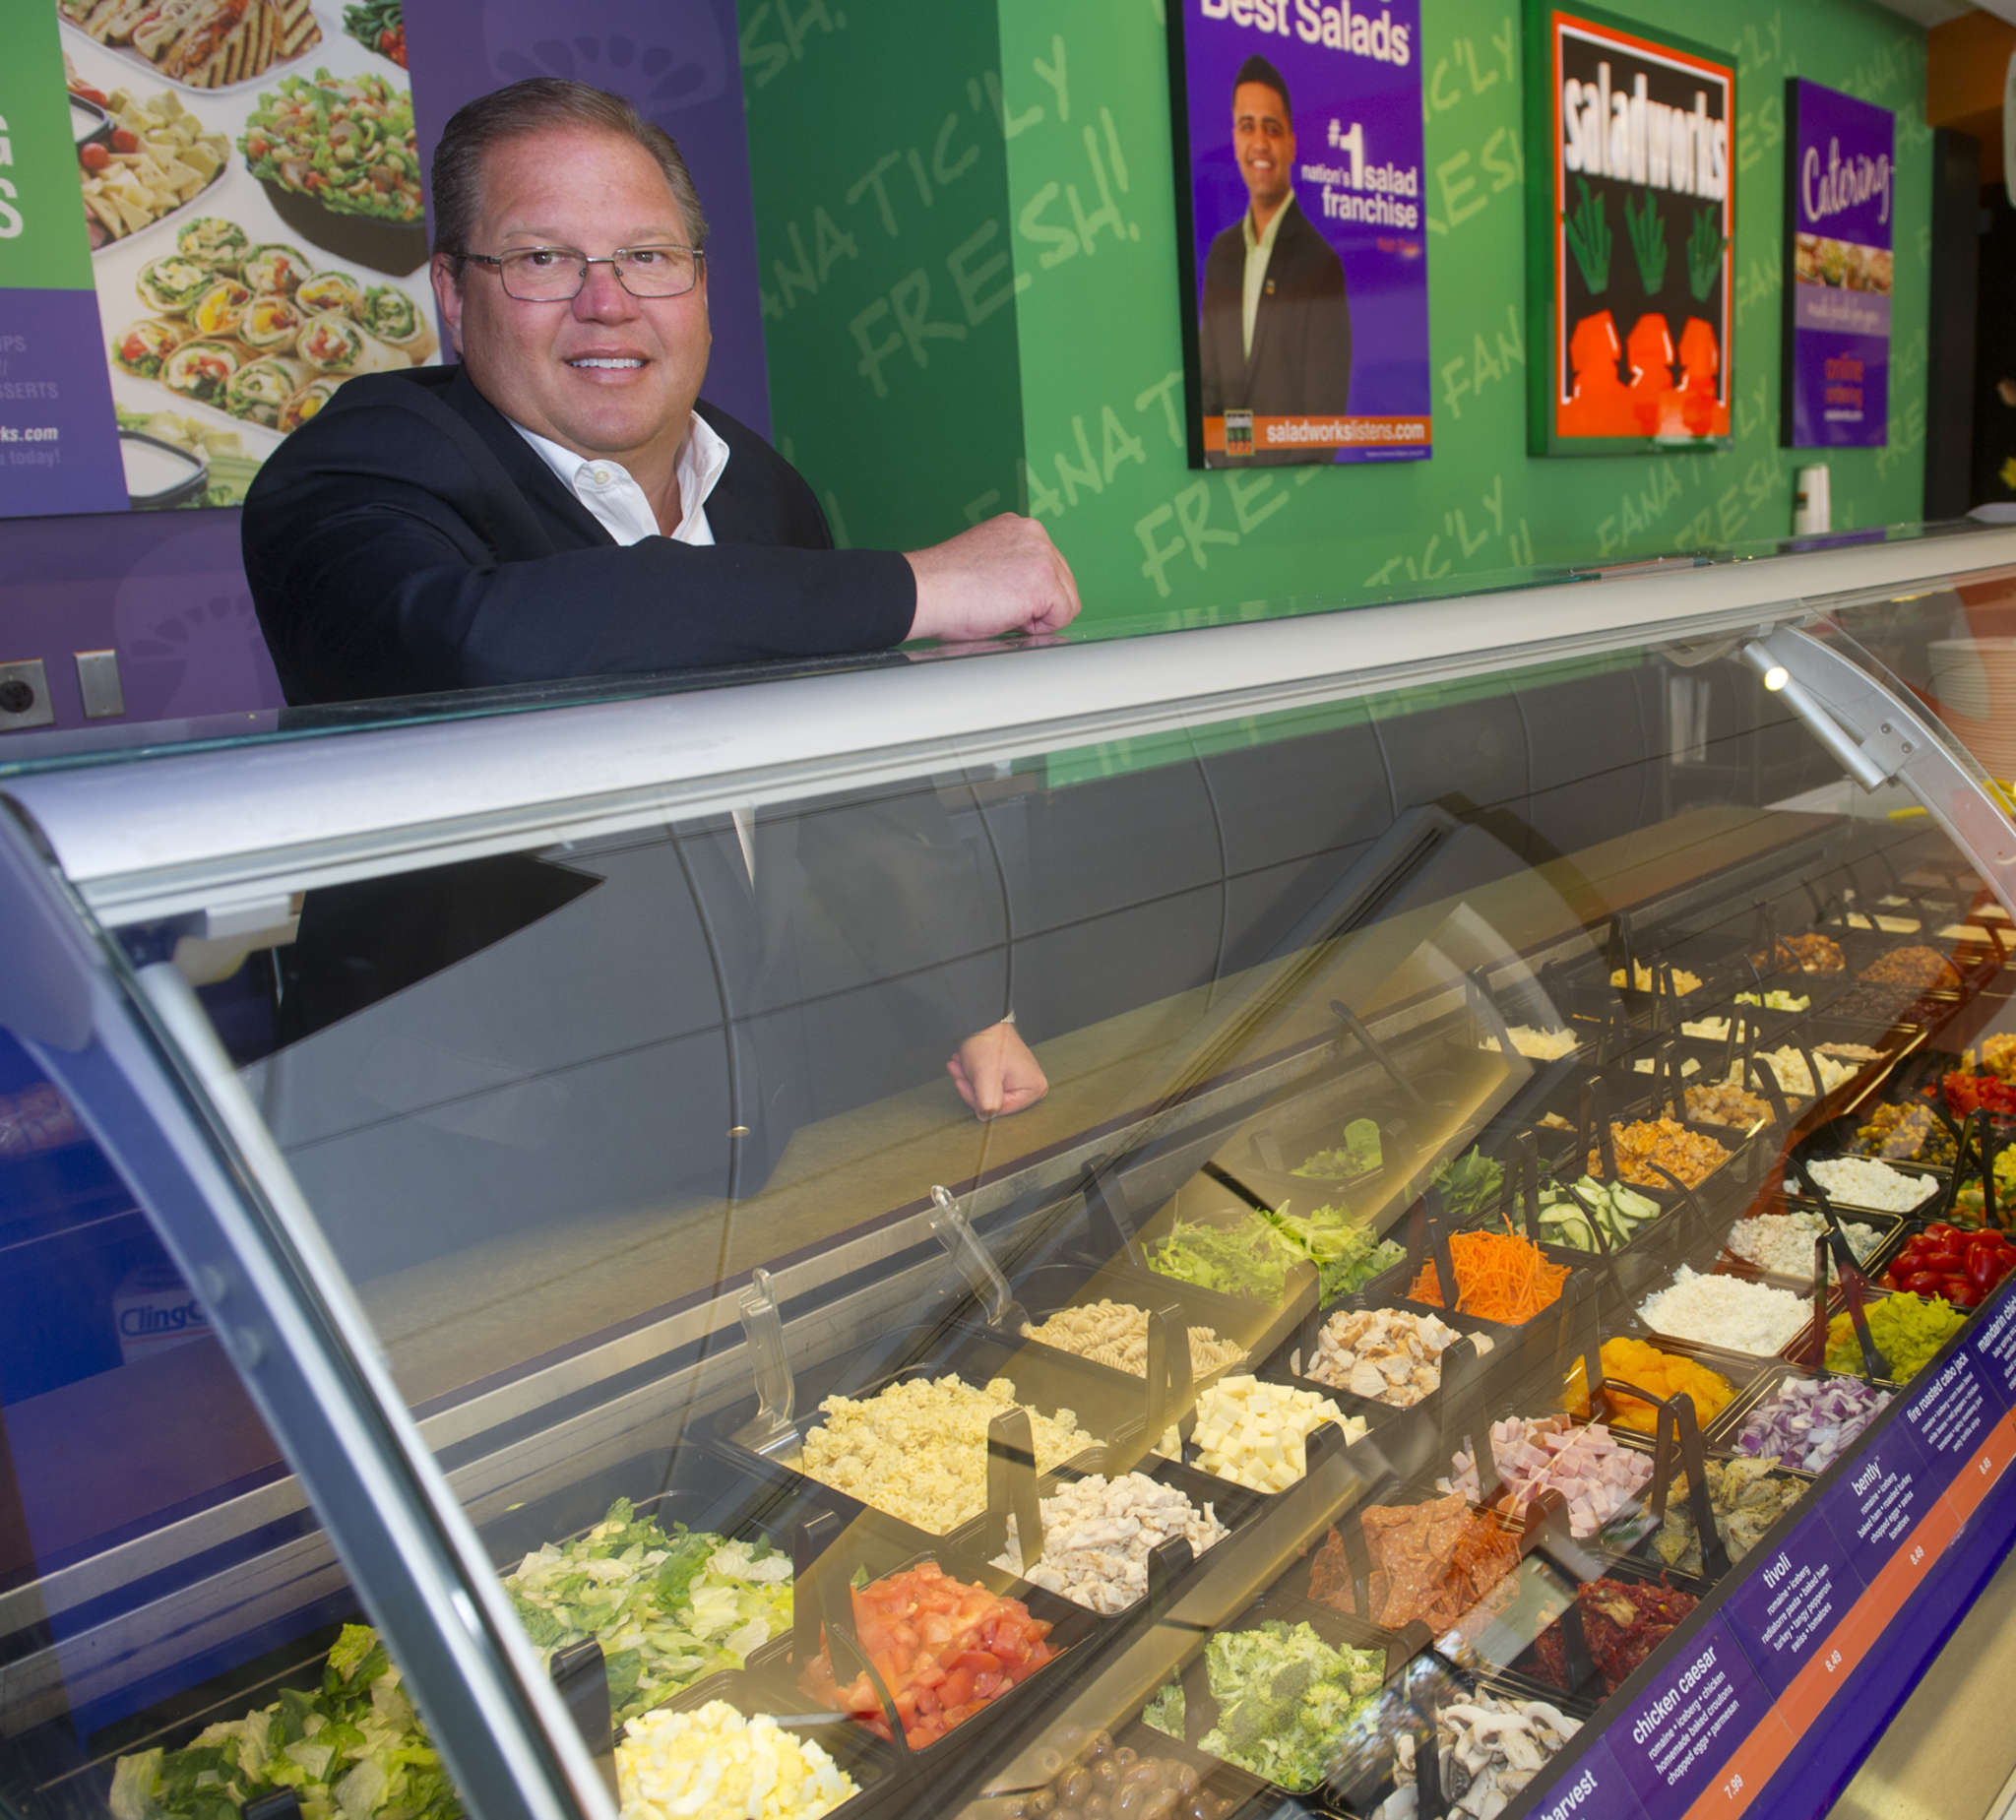 "Paul Steck, former Saladworks CEO, helmed the franchise since 2002 and unveiled a new store model in 2015. Patrick Sugrue will be promoting the ""refreshed"" model."